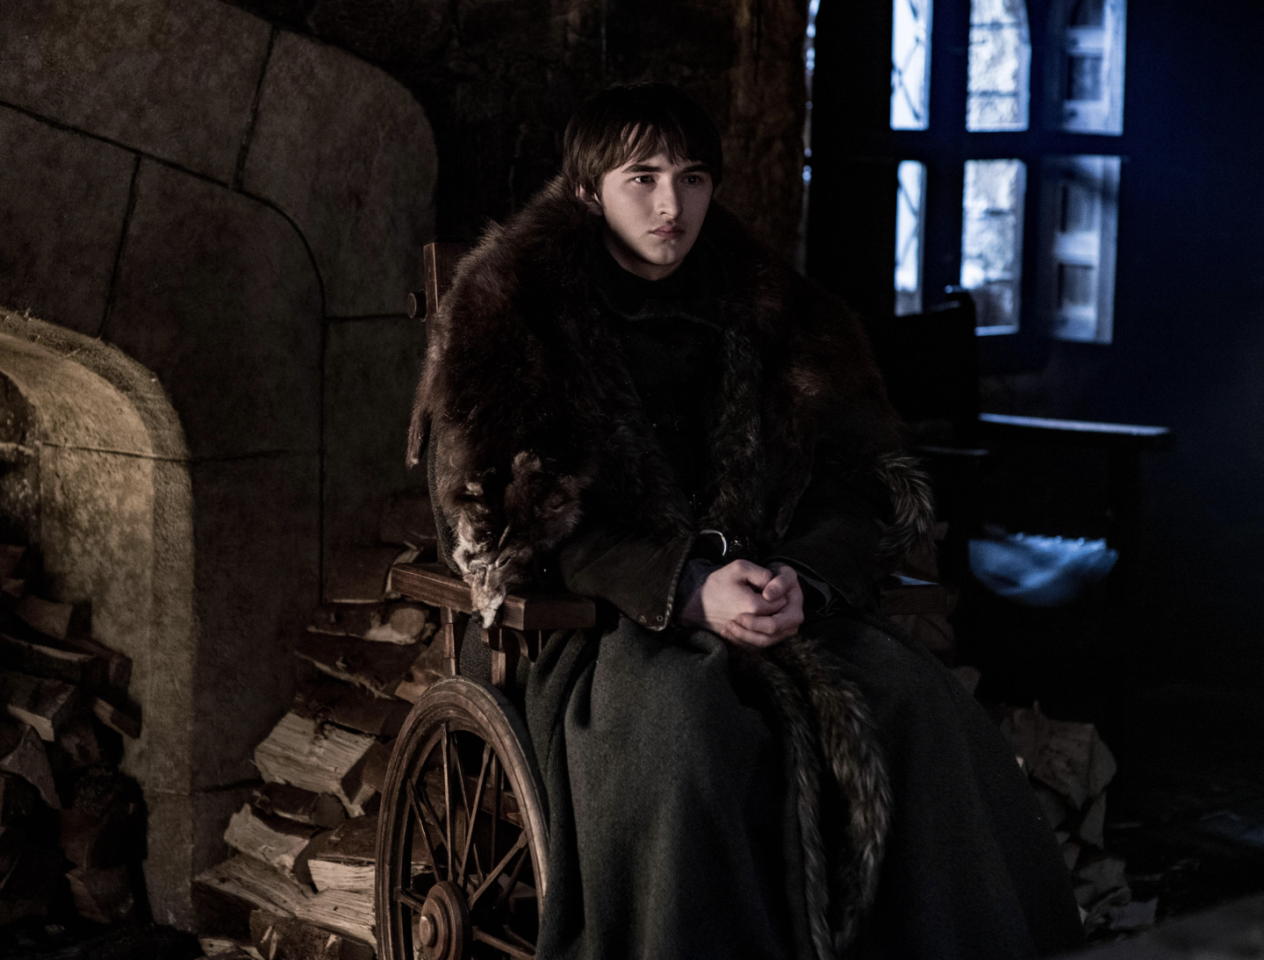 <p>Bran Stark prepares for the battle between the living and the dead.</p>